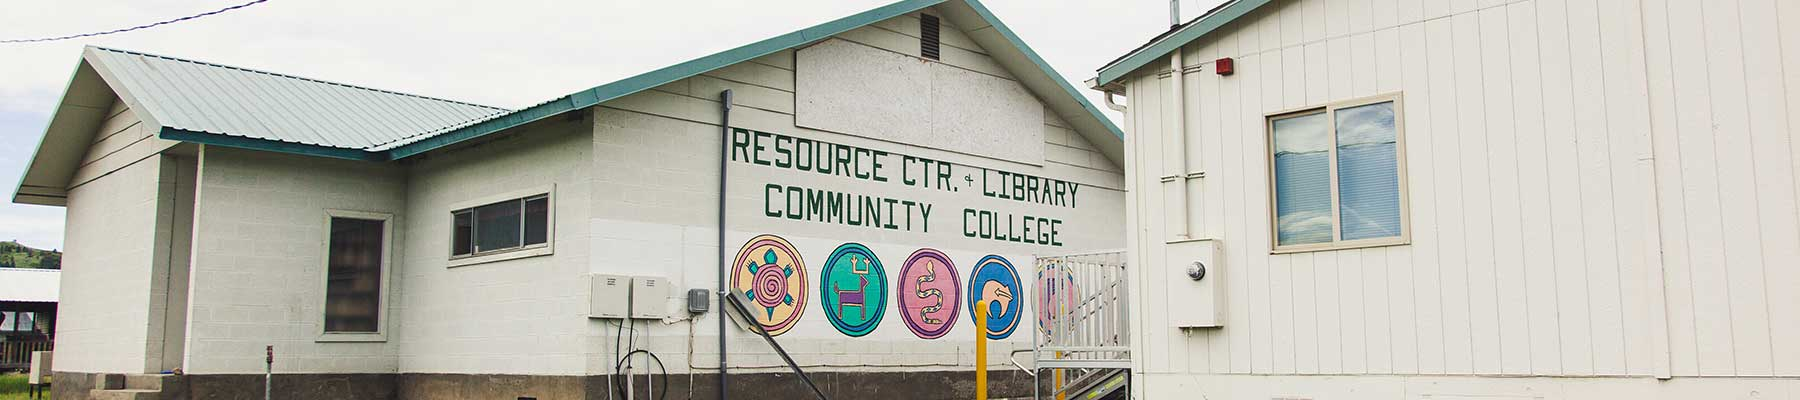 Inchelium WA Resource Center Library and Community College